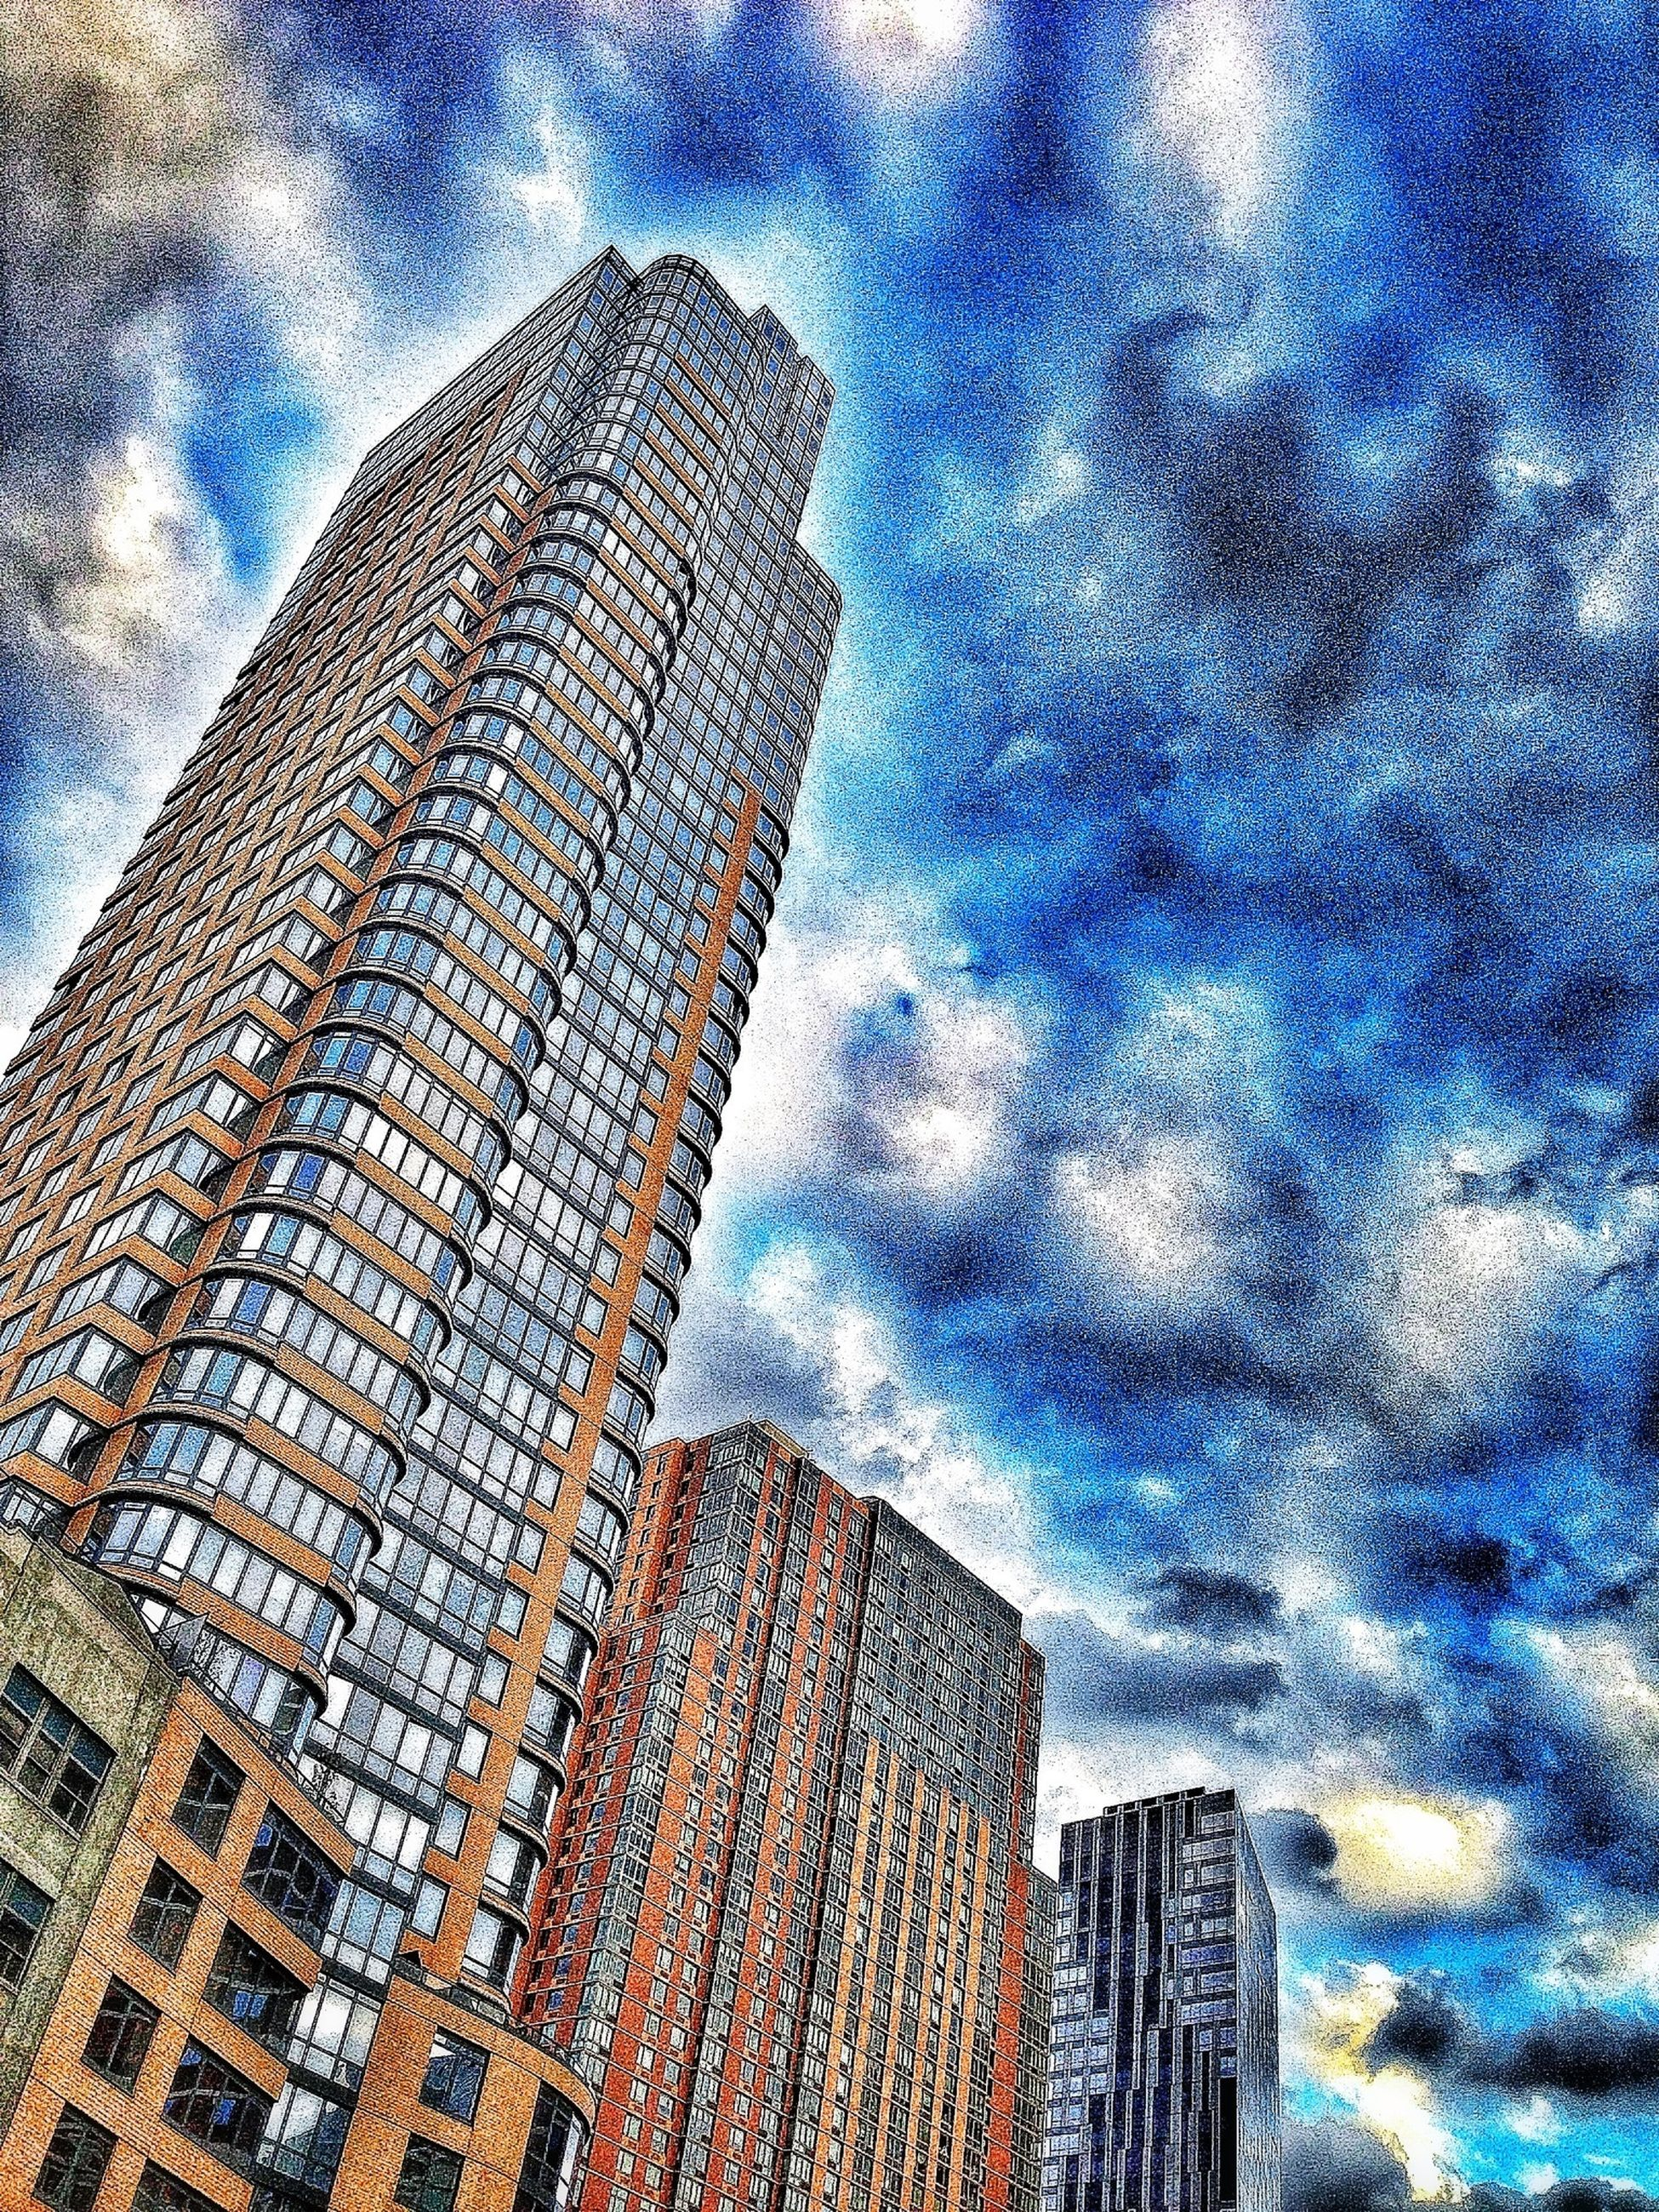 low angle view, building exterior, architecture, sky, built structure, tall - high, cloud - sky, tower, skyscraper, modern, city, cloudy, office building, tall, blue, cloud, famous place, outdoors, no people, day